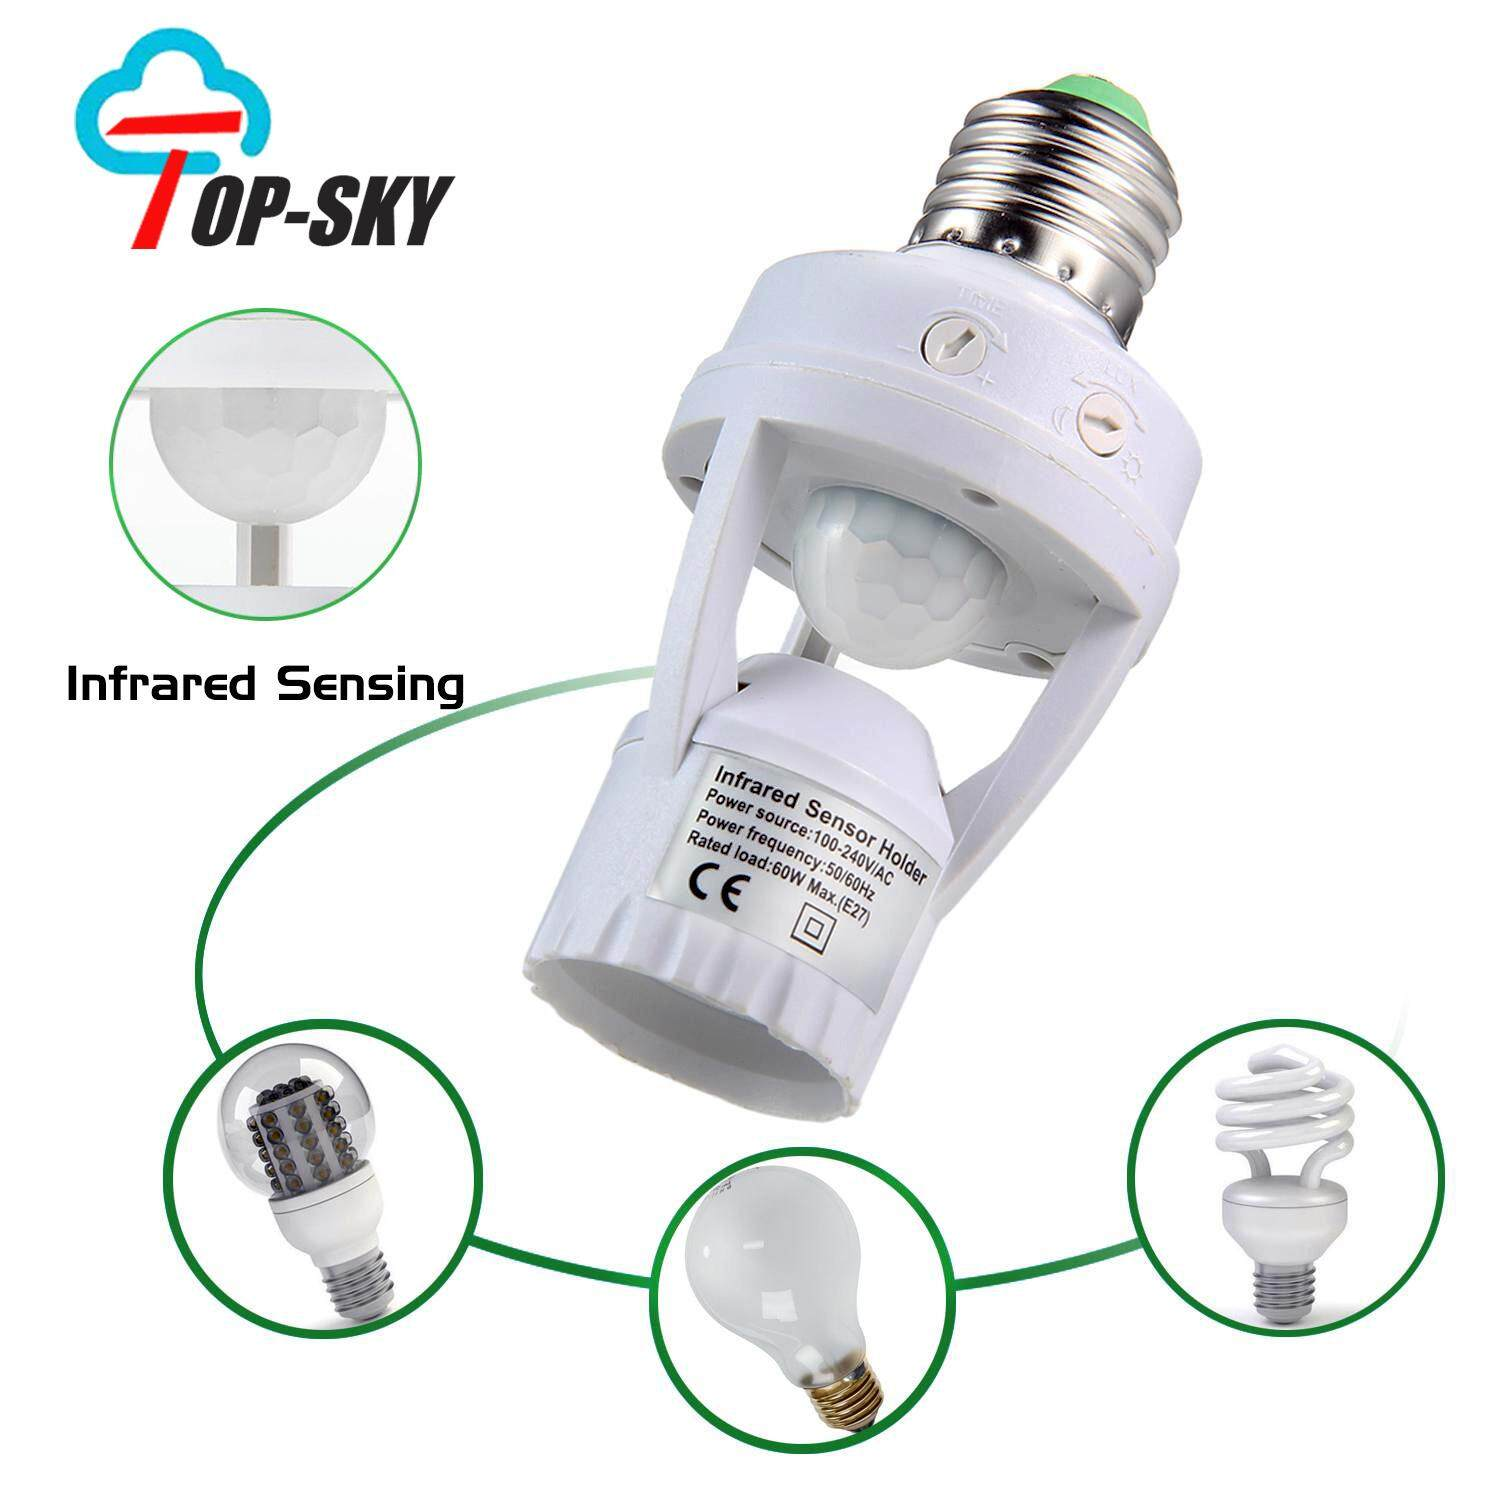 Philippines top sky smart infrared sensor holder motion light sensor lamp socket pir automatic led lights